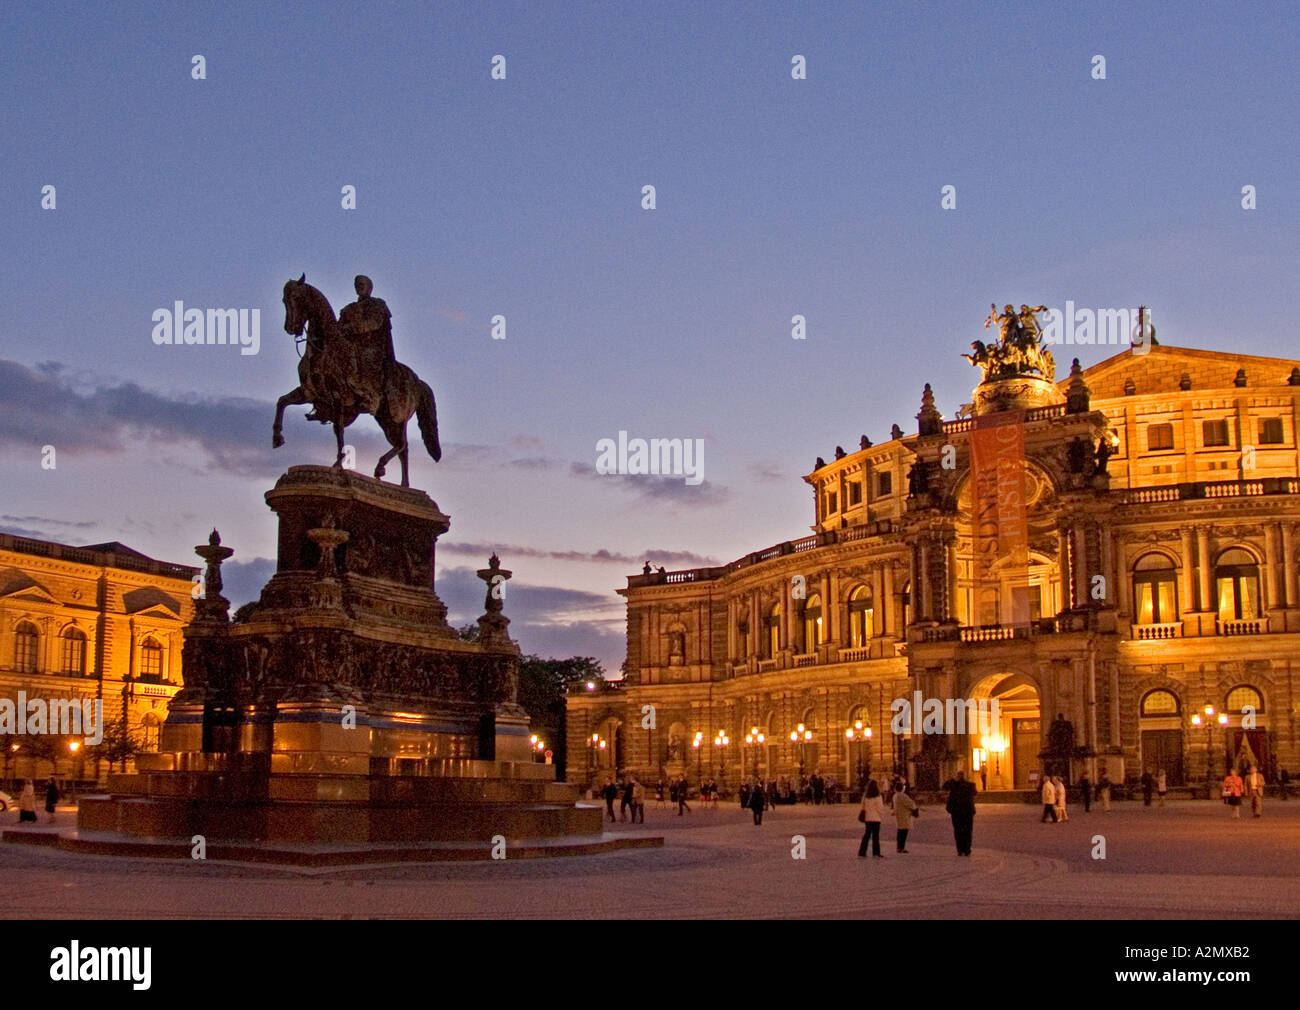 BRD Germany Sachsen Dresden Capitol at the River Elbe the Elb Florenc at the Theater Square the Semper Opera and the Horseman - Stock Image